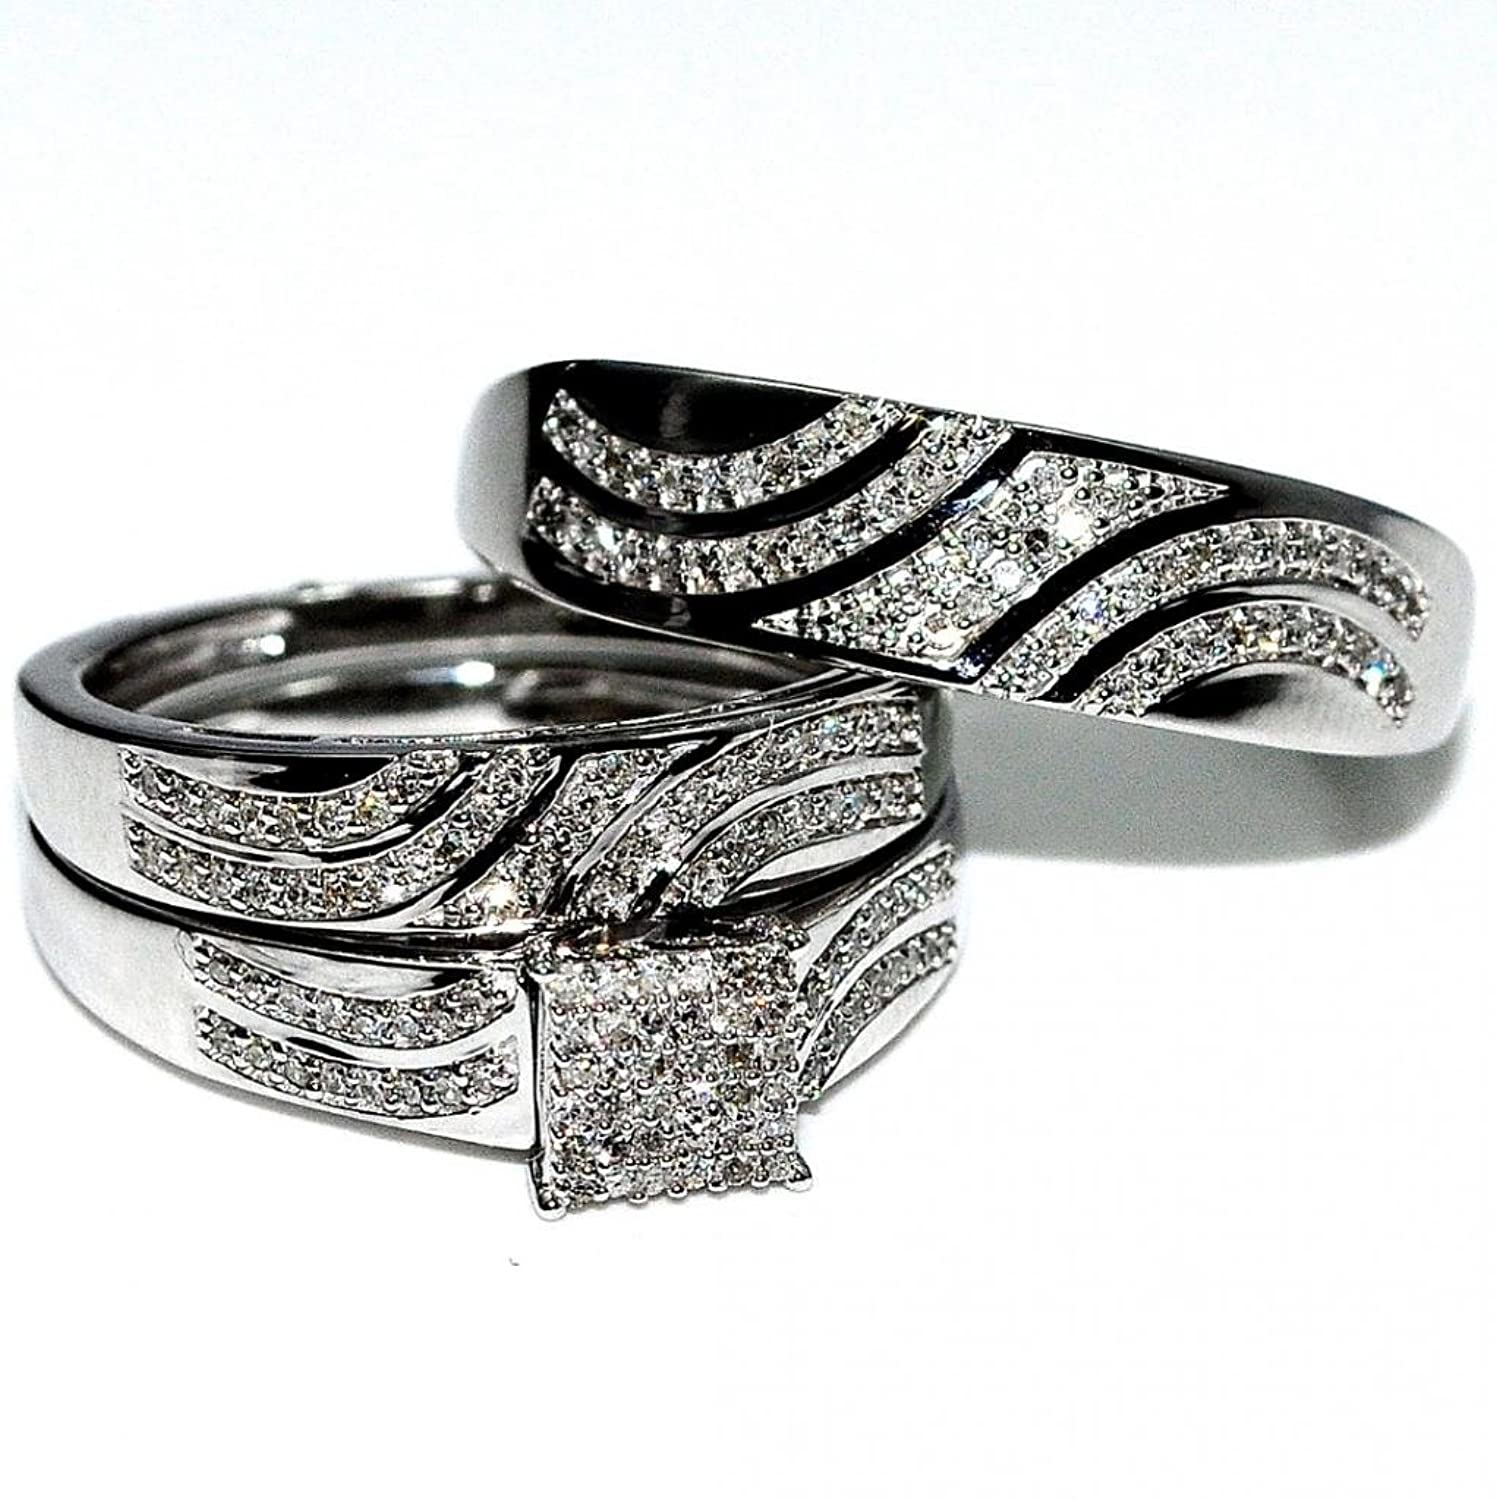 amazoncom his and her rings trio wedding set white gold 04cttw diamonds square topij i2i3 jewelry - Wedding Set Rings